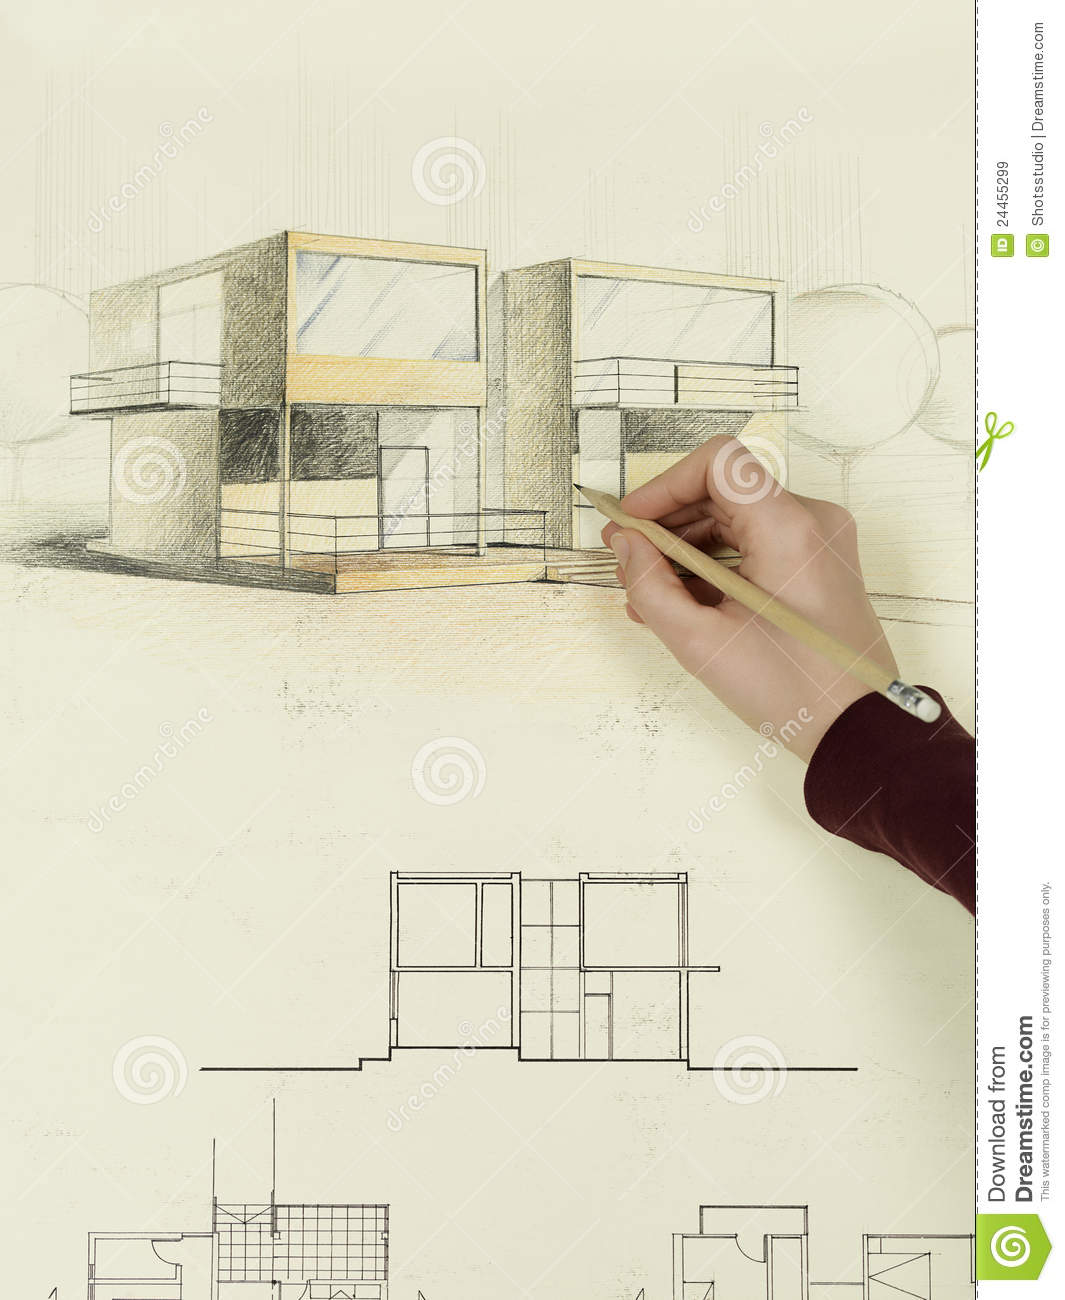 architectural hand drawings. Woman S Hand Drawing Architectural Sketch Of House Drawings I